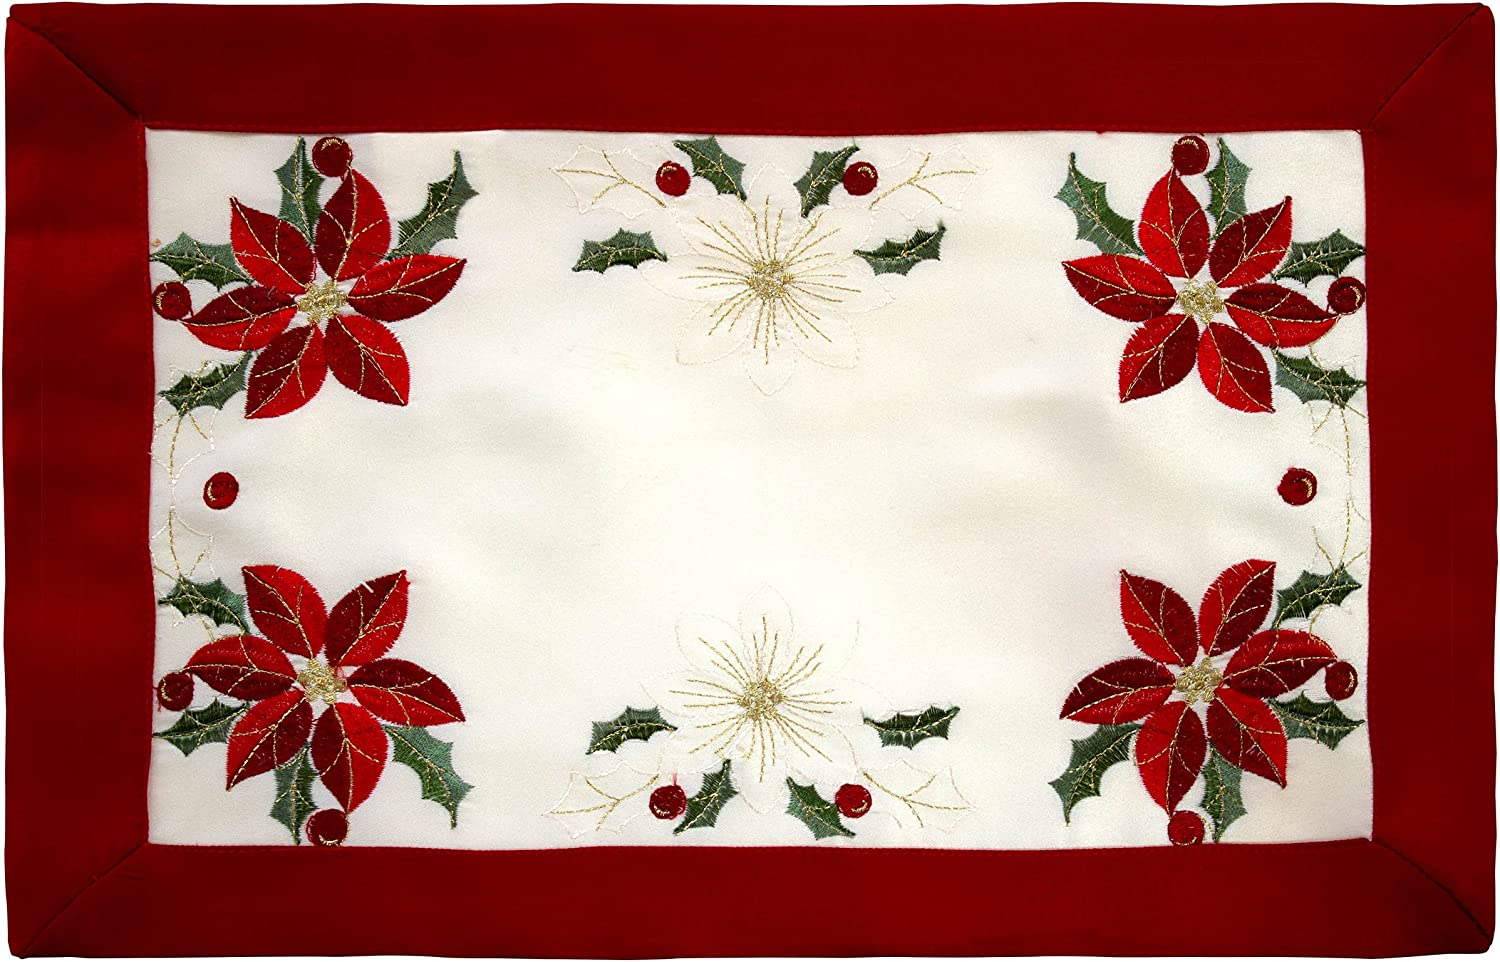 Holiday Embroidered Poinsettia 13 x 19 in. Cloth Placemats with Red Trim Border, Set of 4